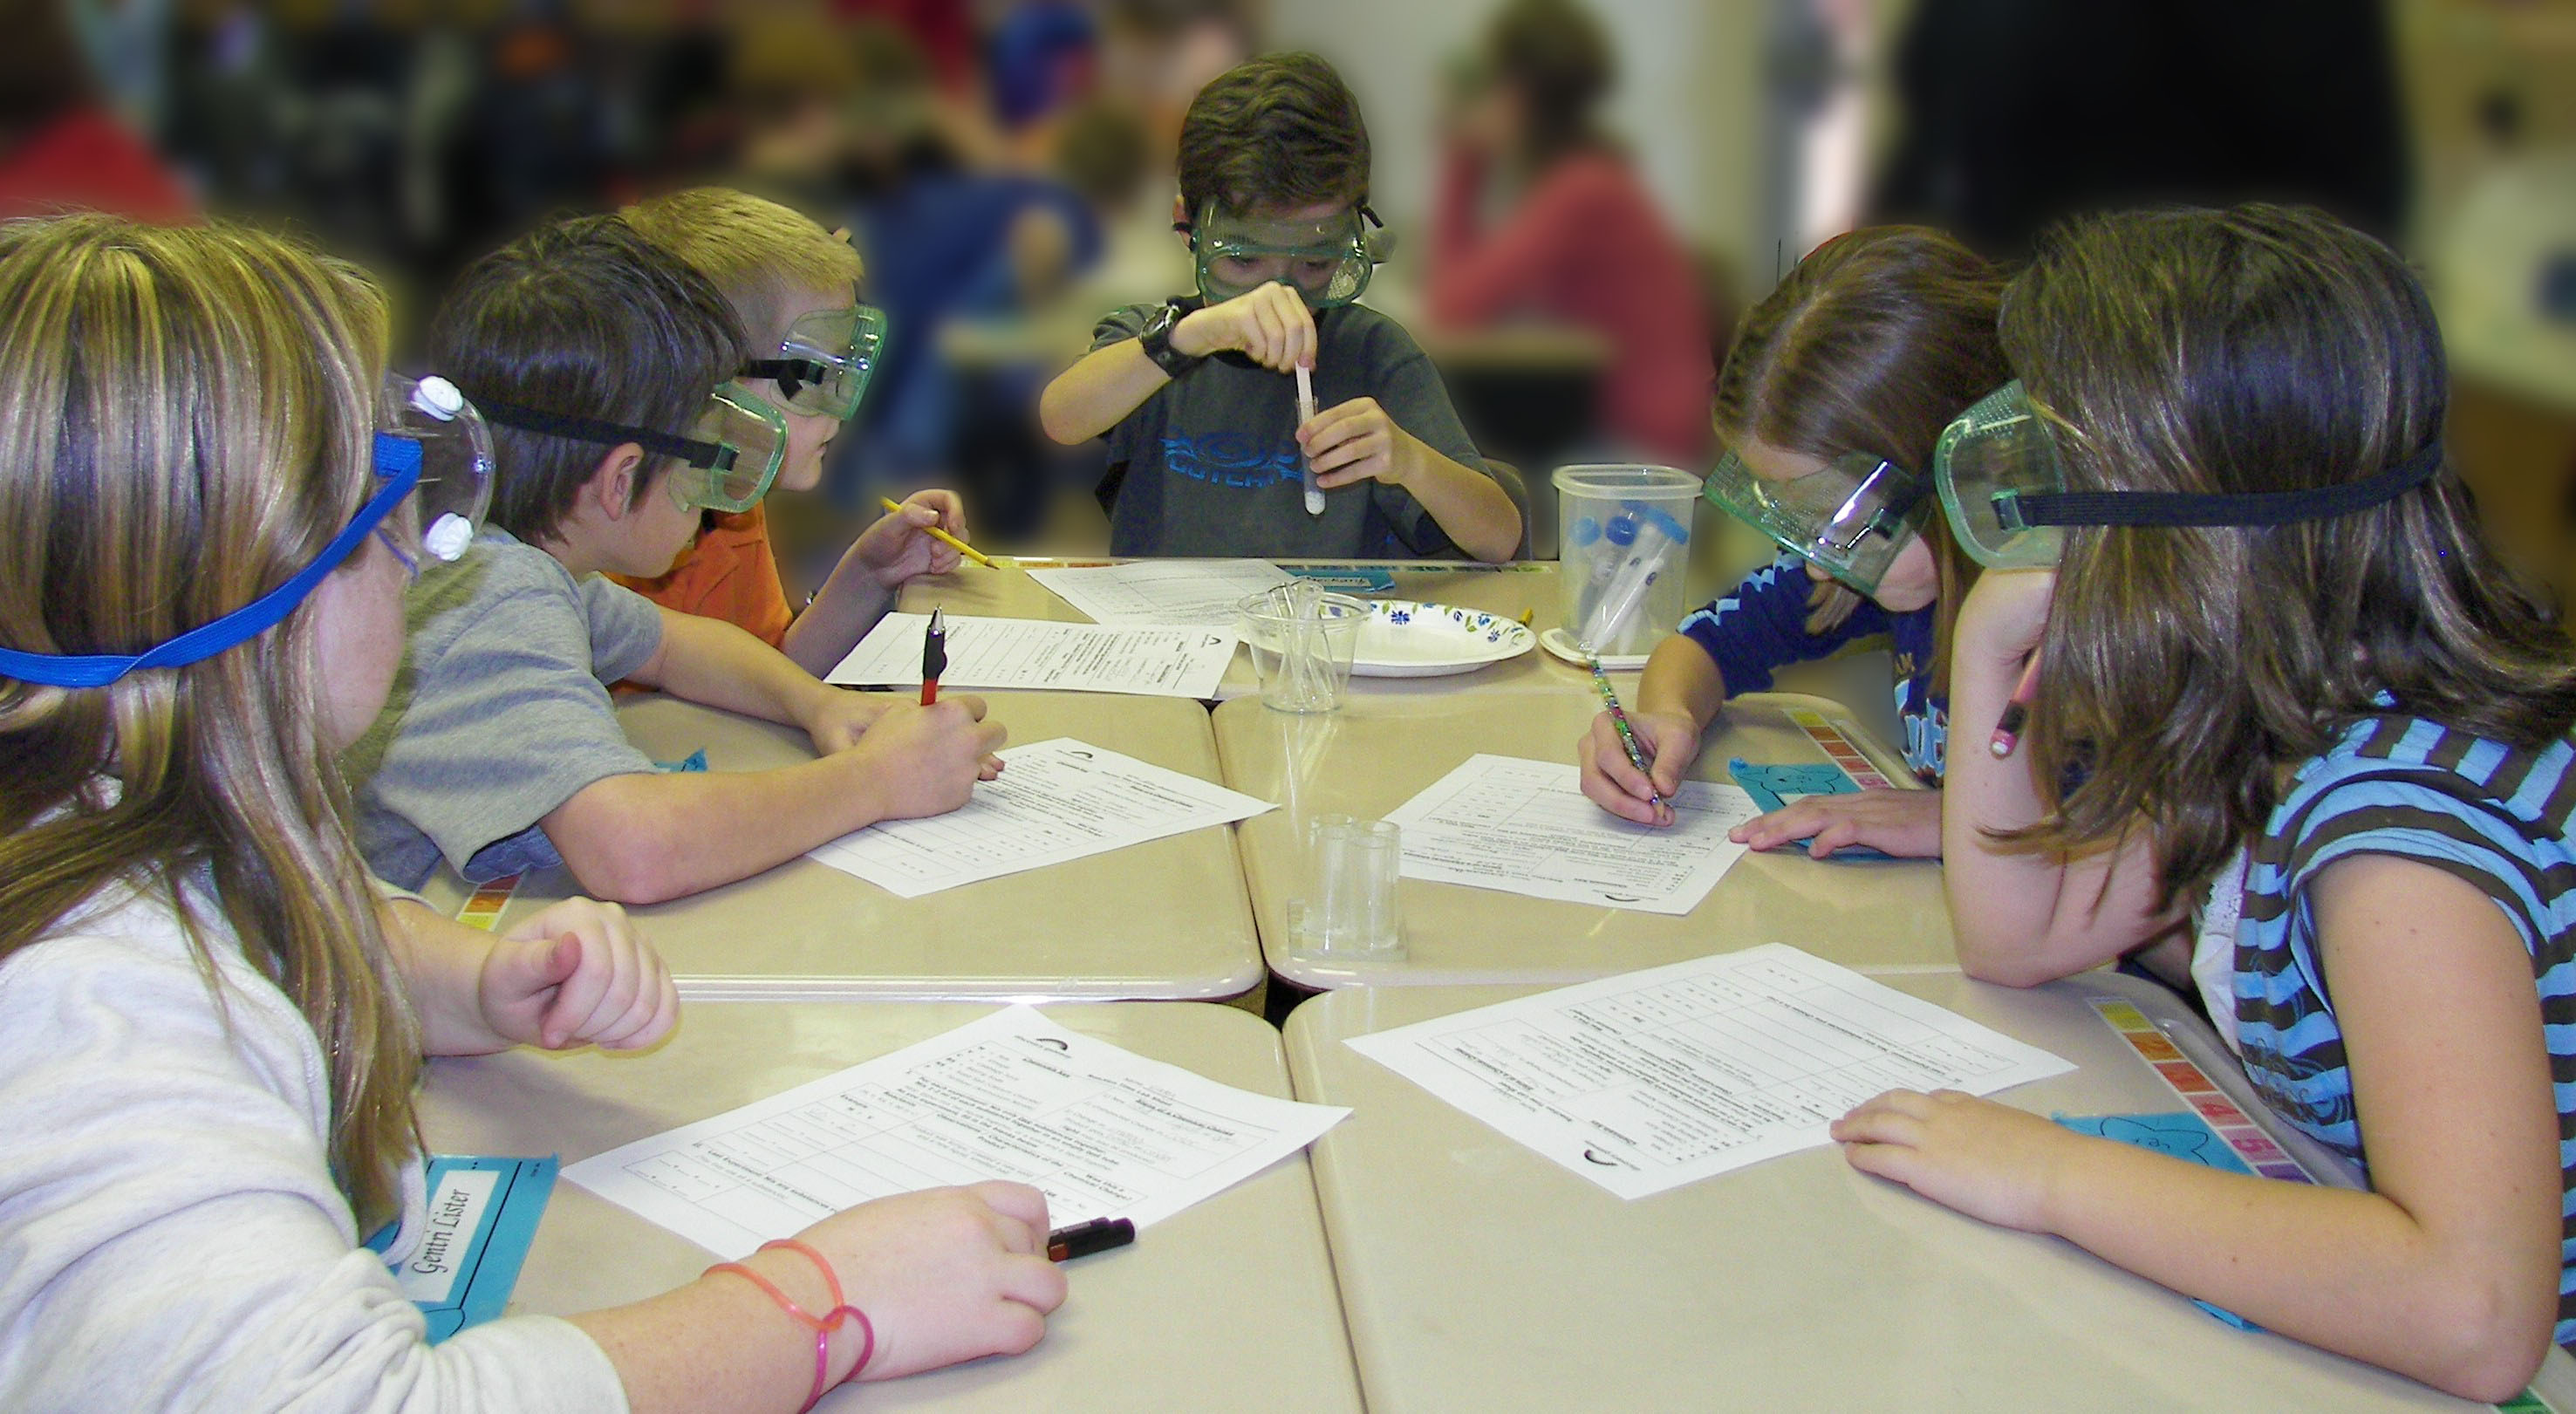 Kids experimenting with test tubes.